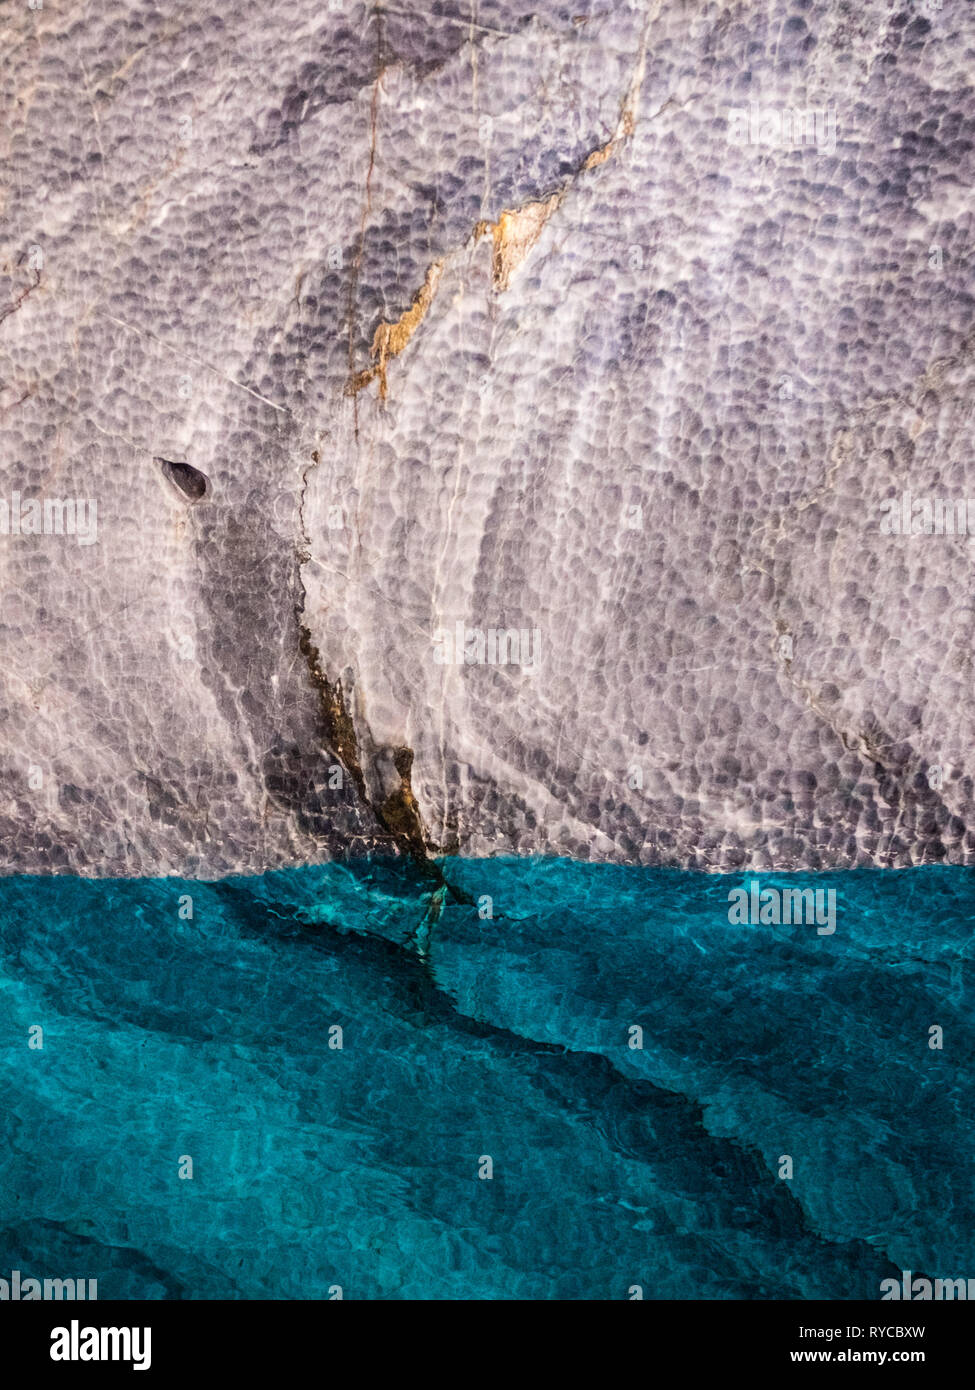 Detail of the marble cathedral in lake General Carrera with blue water, Patagonia of Chile. Carretera Austral - Stock Image